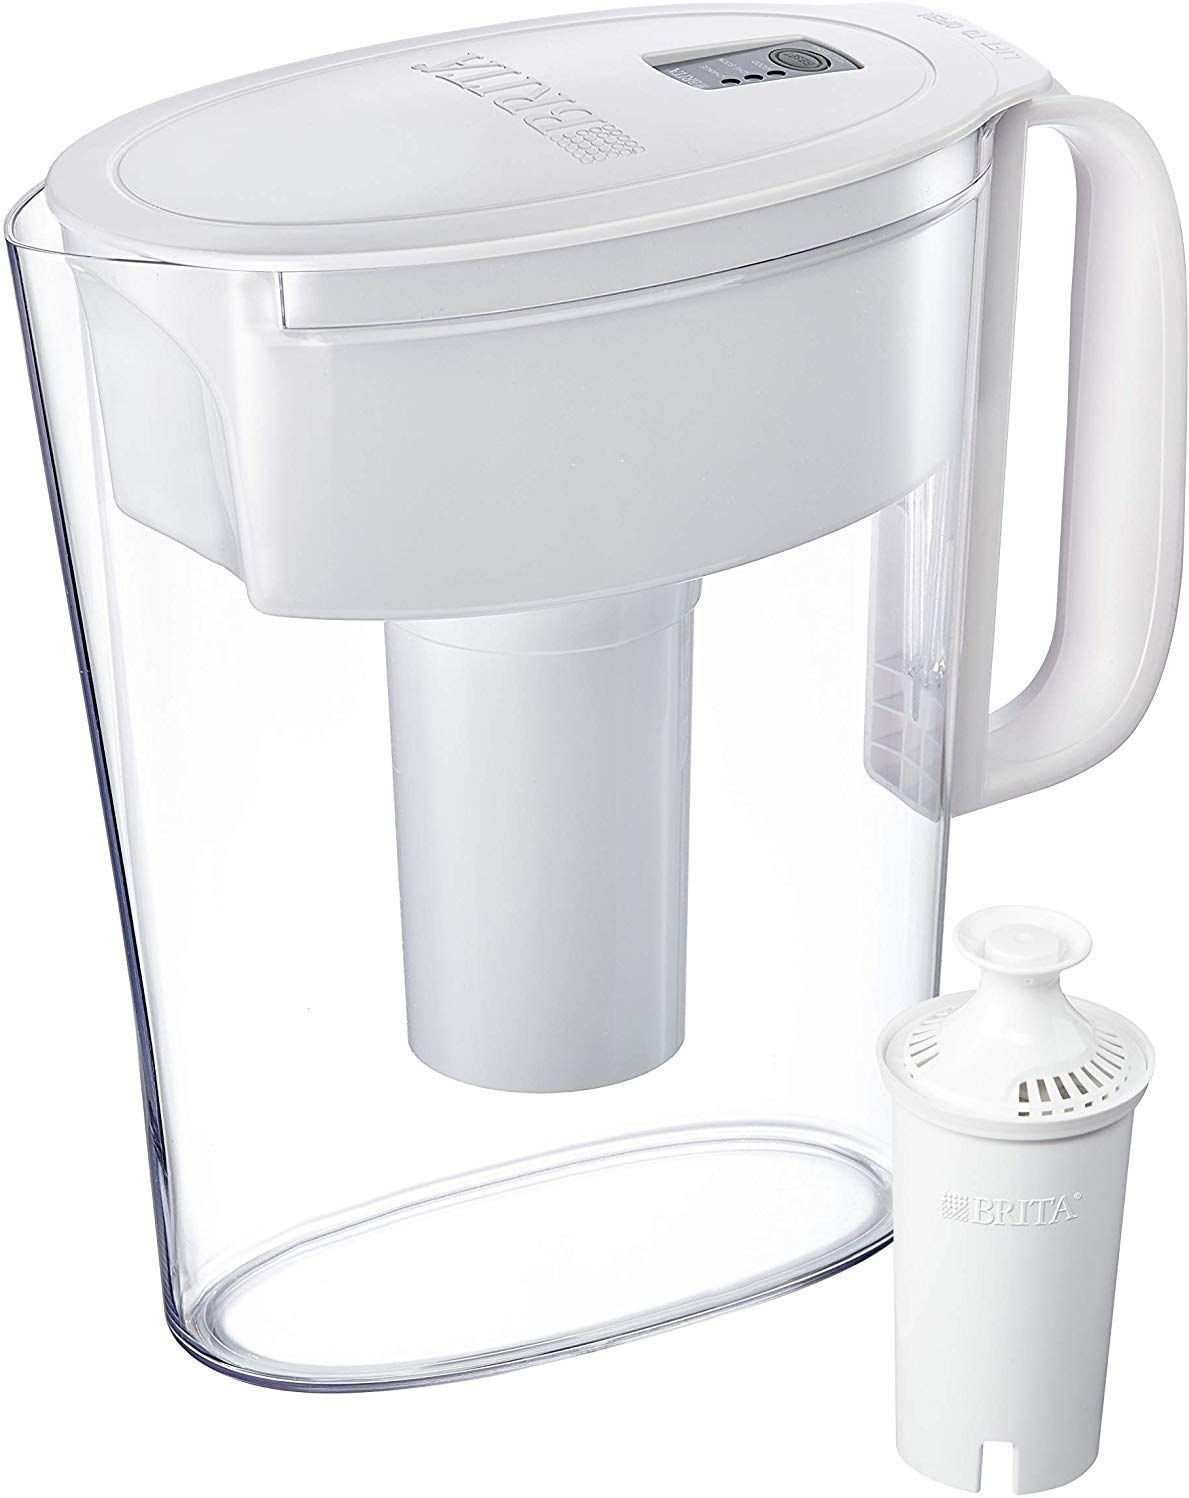 Amazon brita small 5 cup water filter pitcher with 1